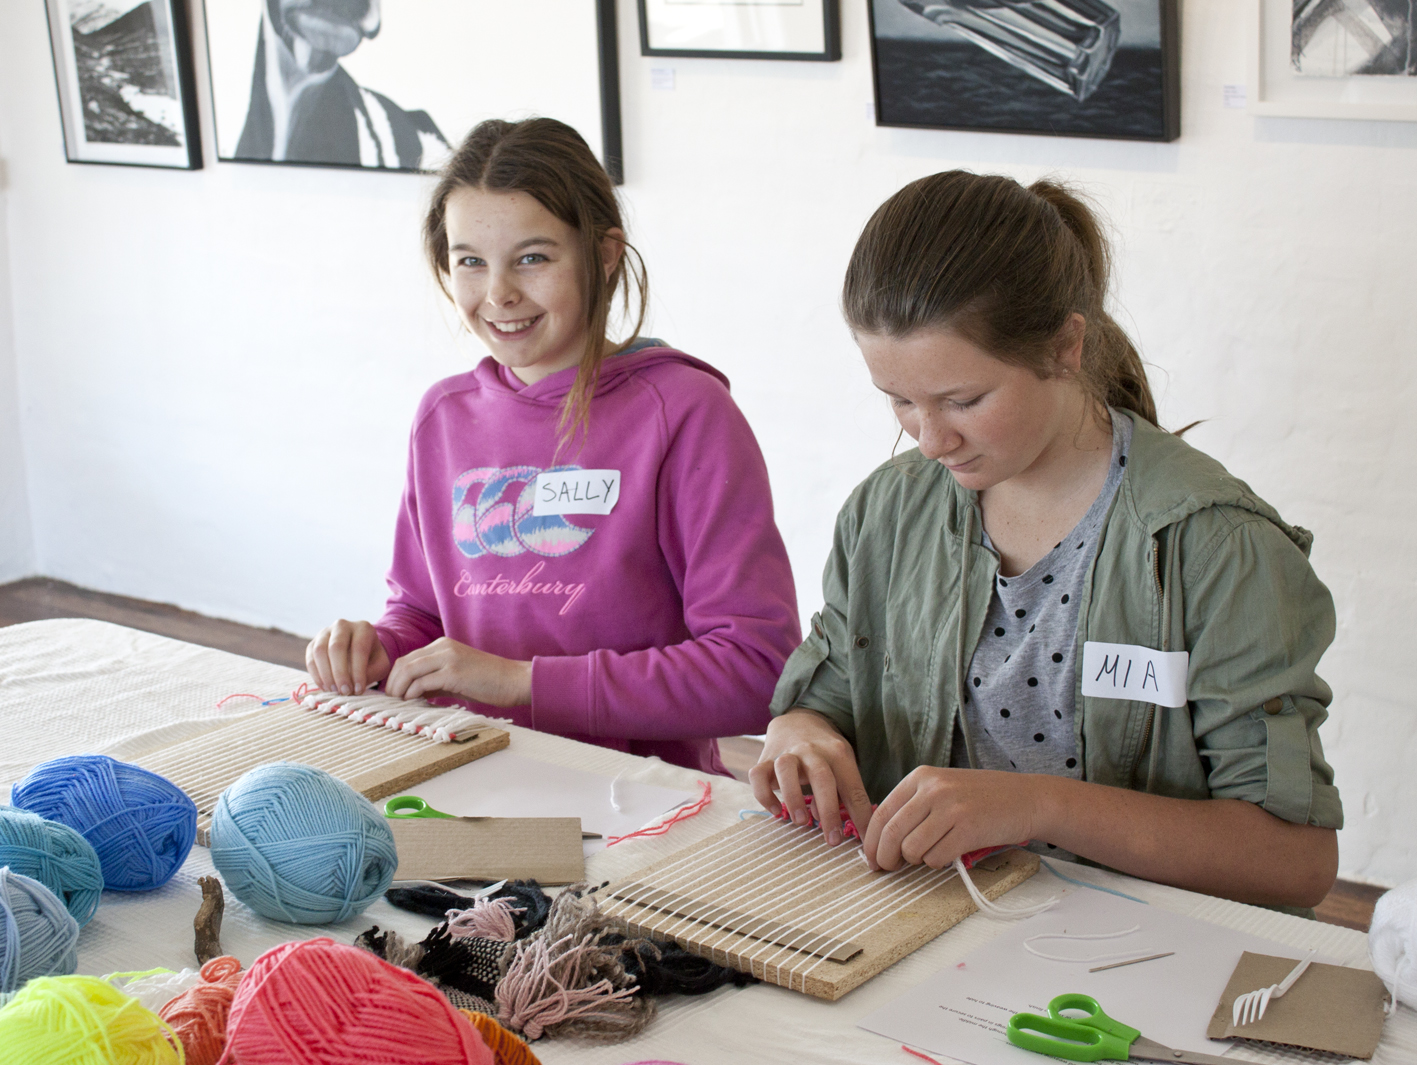 Kids Weaving Class - The Corner Store Gallery, photograph by Madeline Young